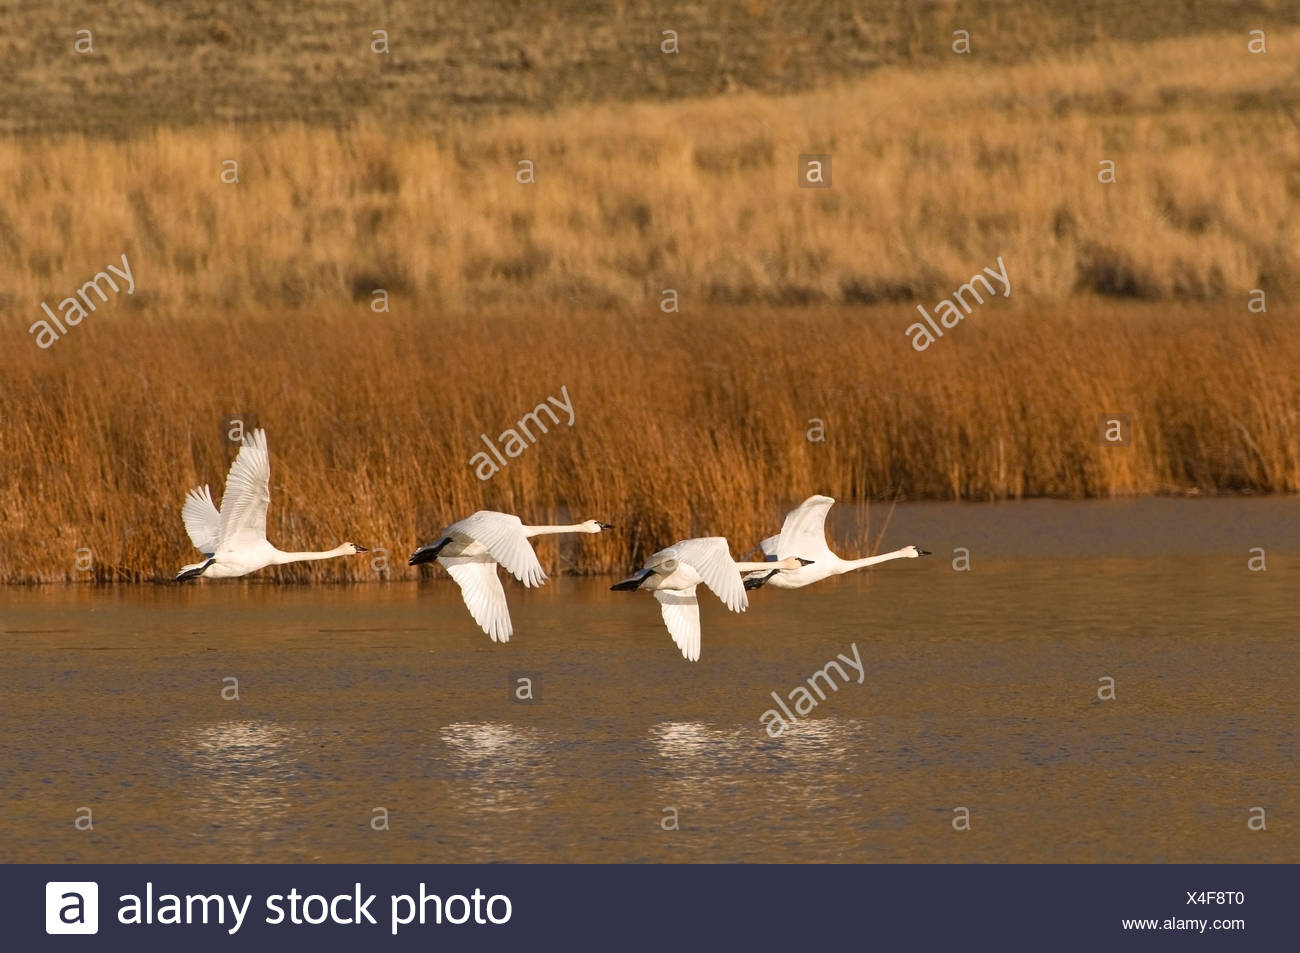 A group of Trumpeter swans (Cygnus buccinator) take flight south to escape winter, near Kamloops, British Columbia, Canada Stock Photo